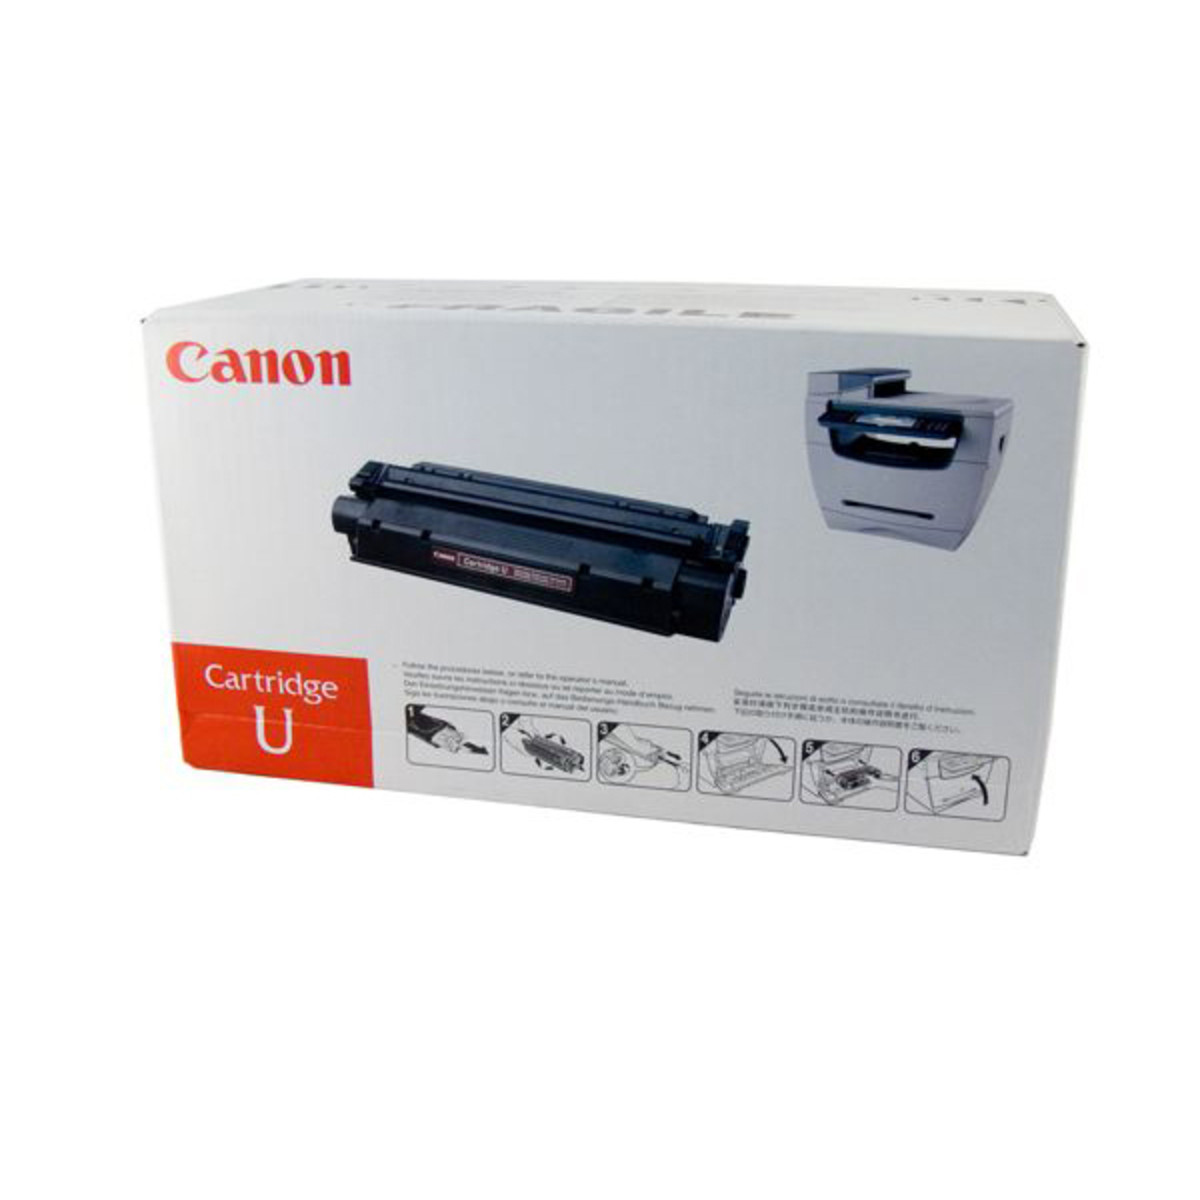 Canon CART-U Black Toner Cartridge